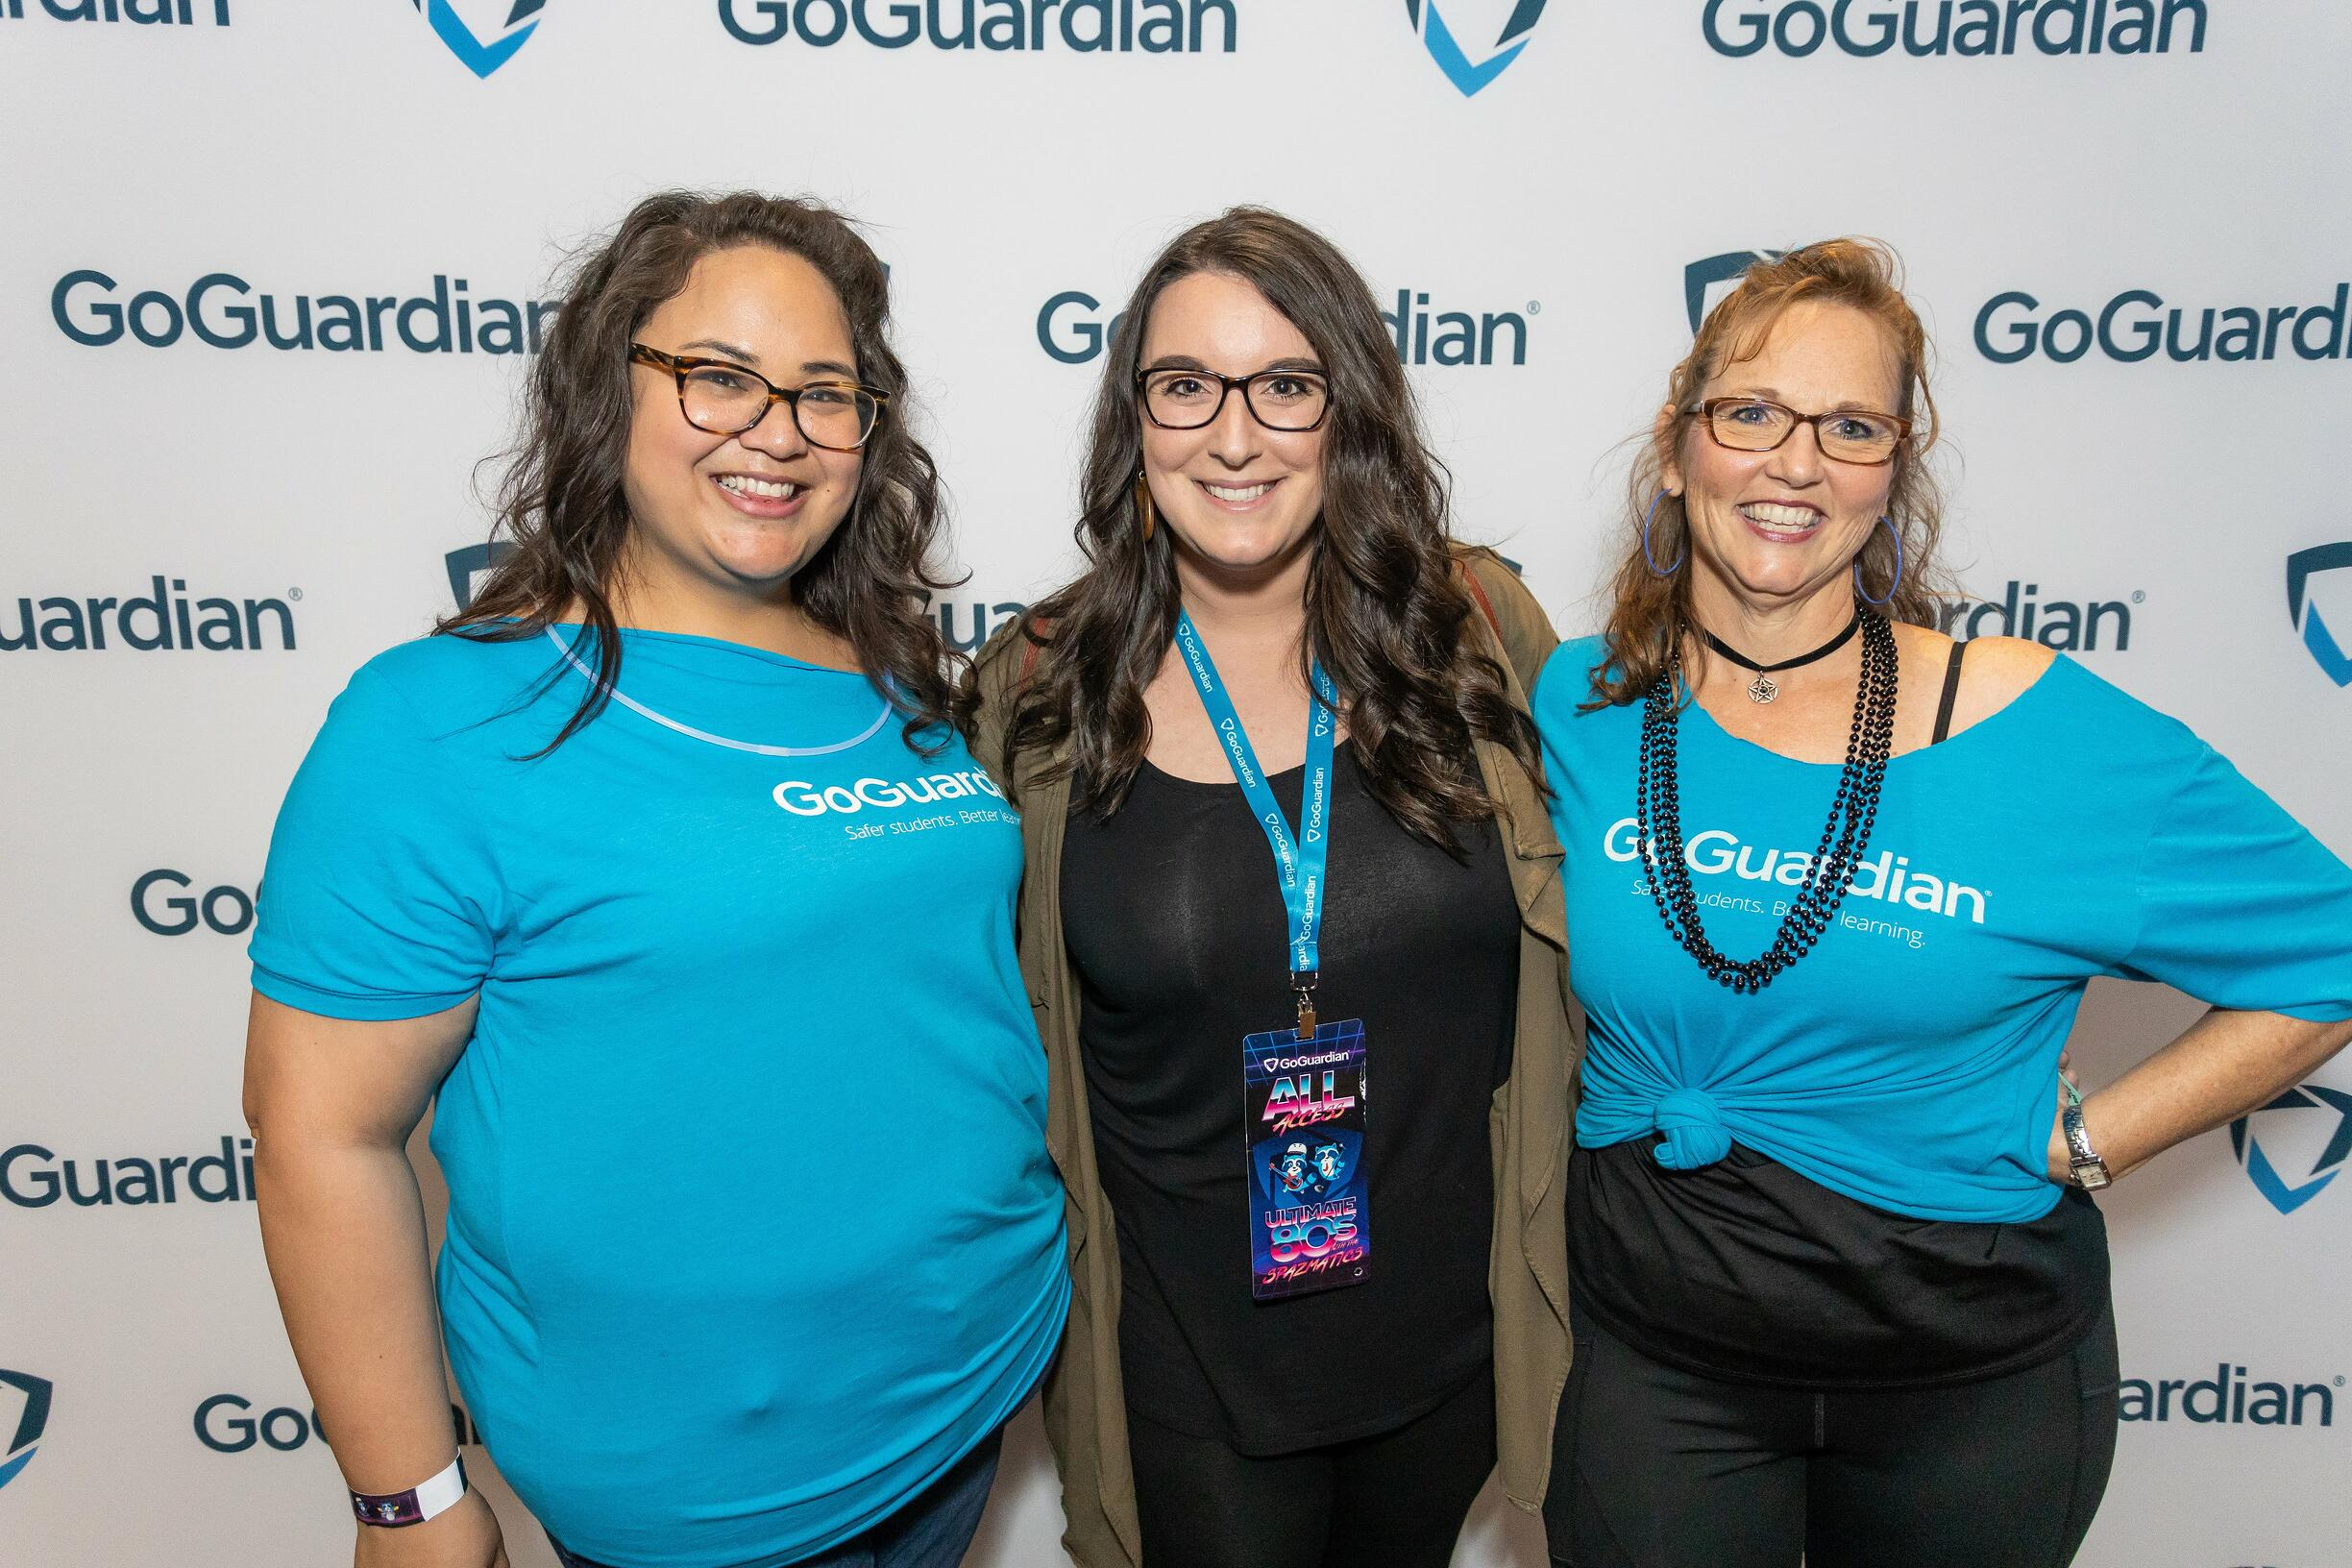 GG events team